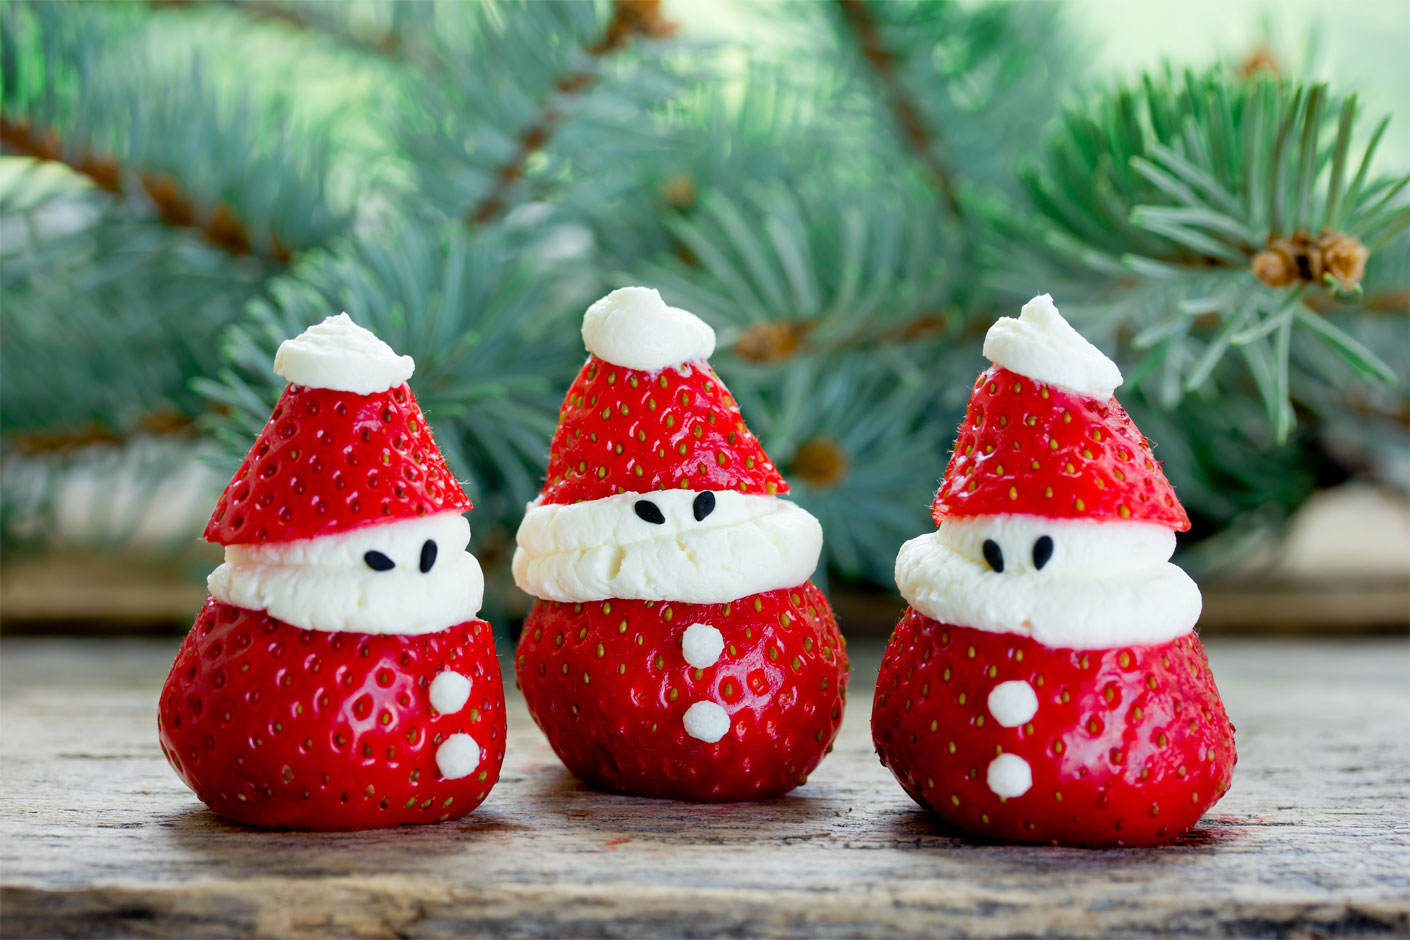 Strawberry Santas Edible Christmas craft ideas